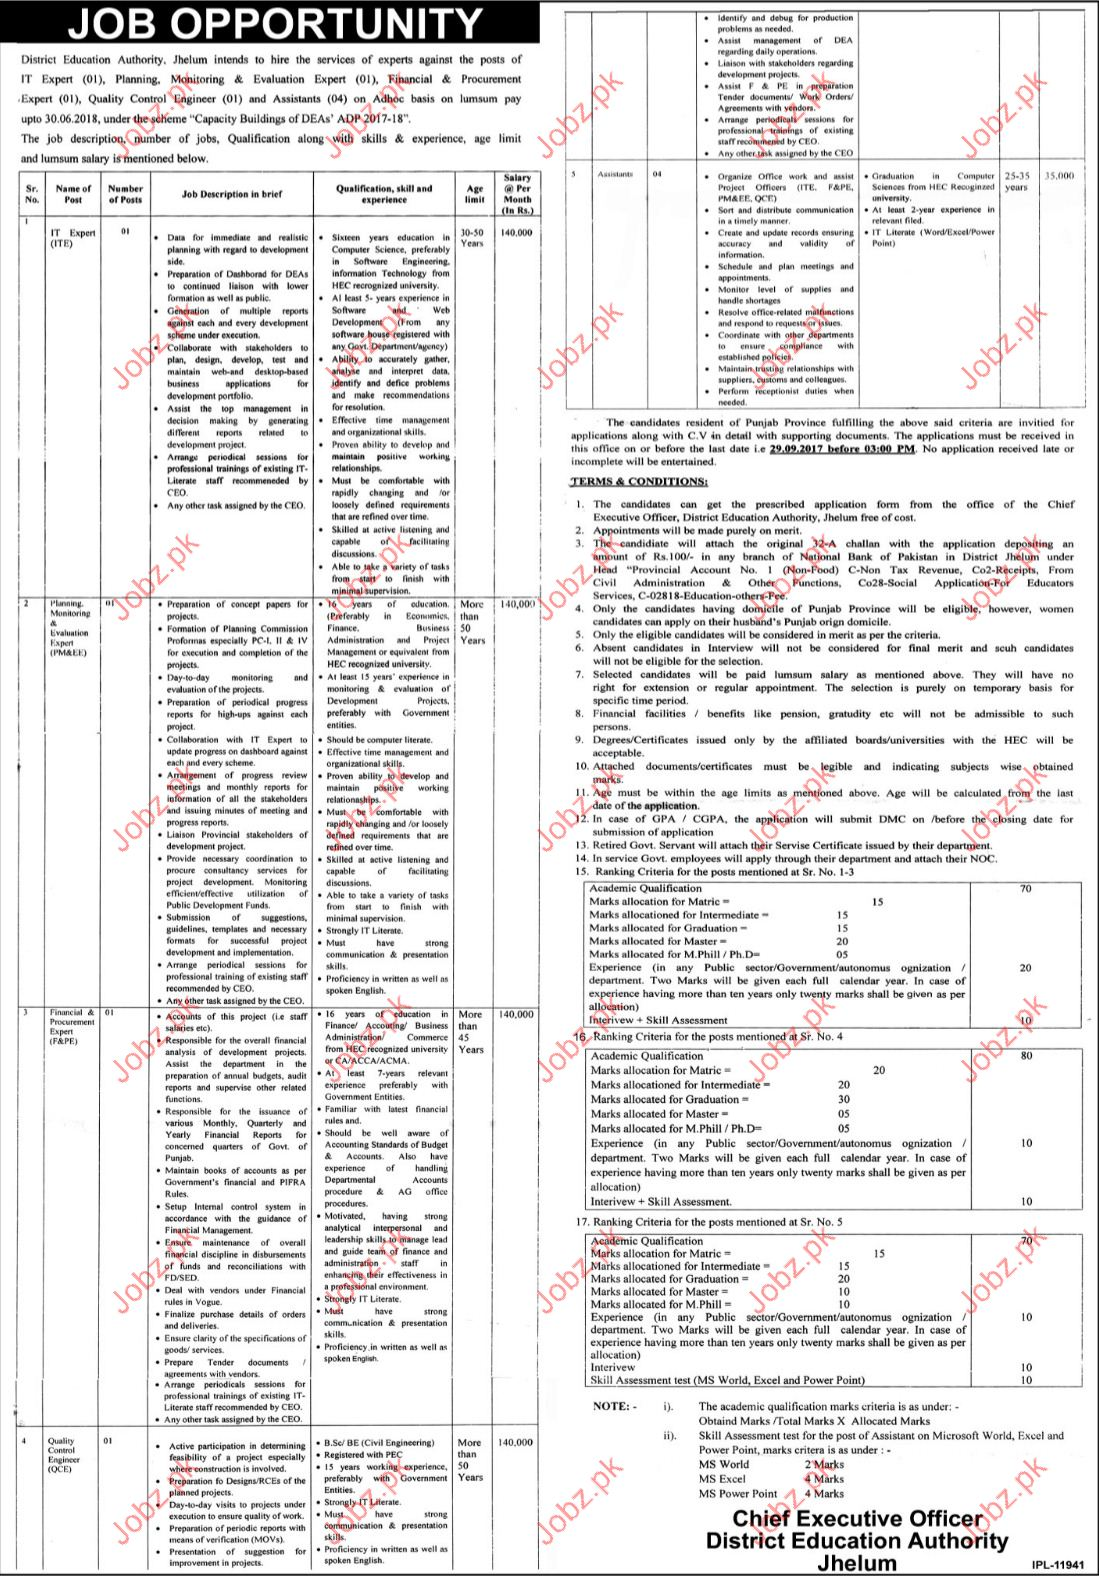 IT Expert Required For District Education Department